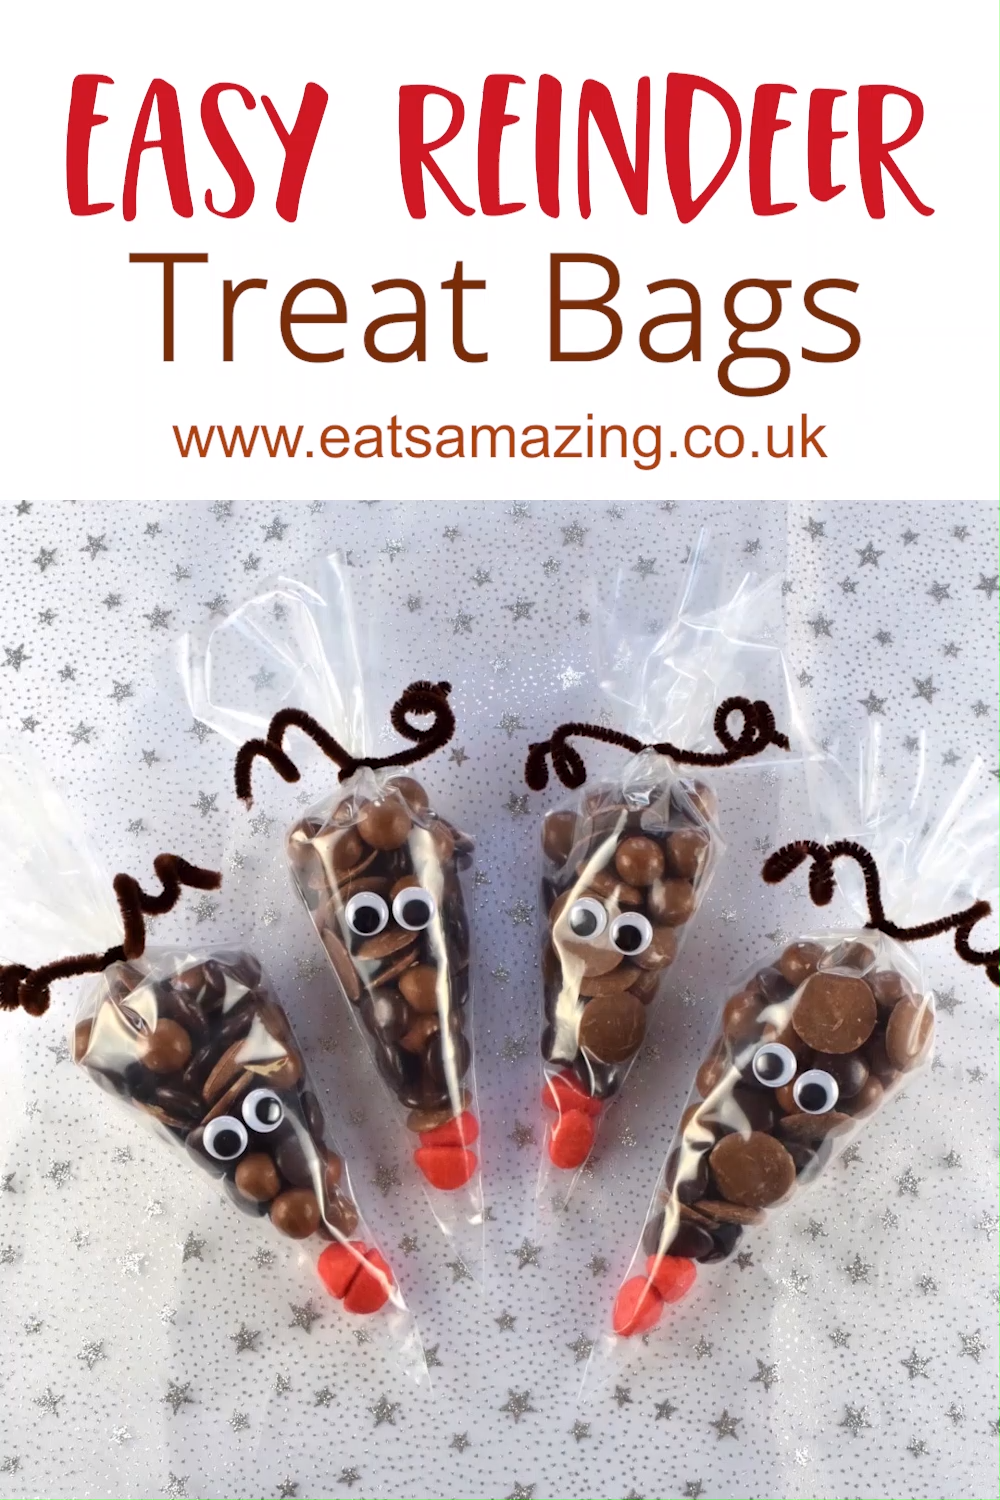 Easy Reindeer Treat Bags for Christmas